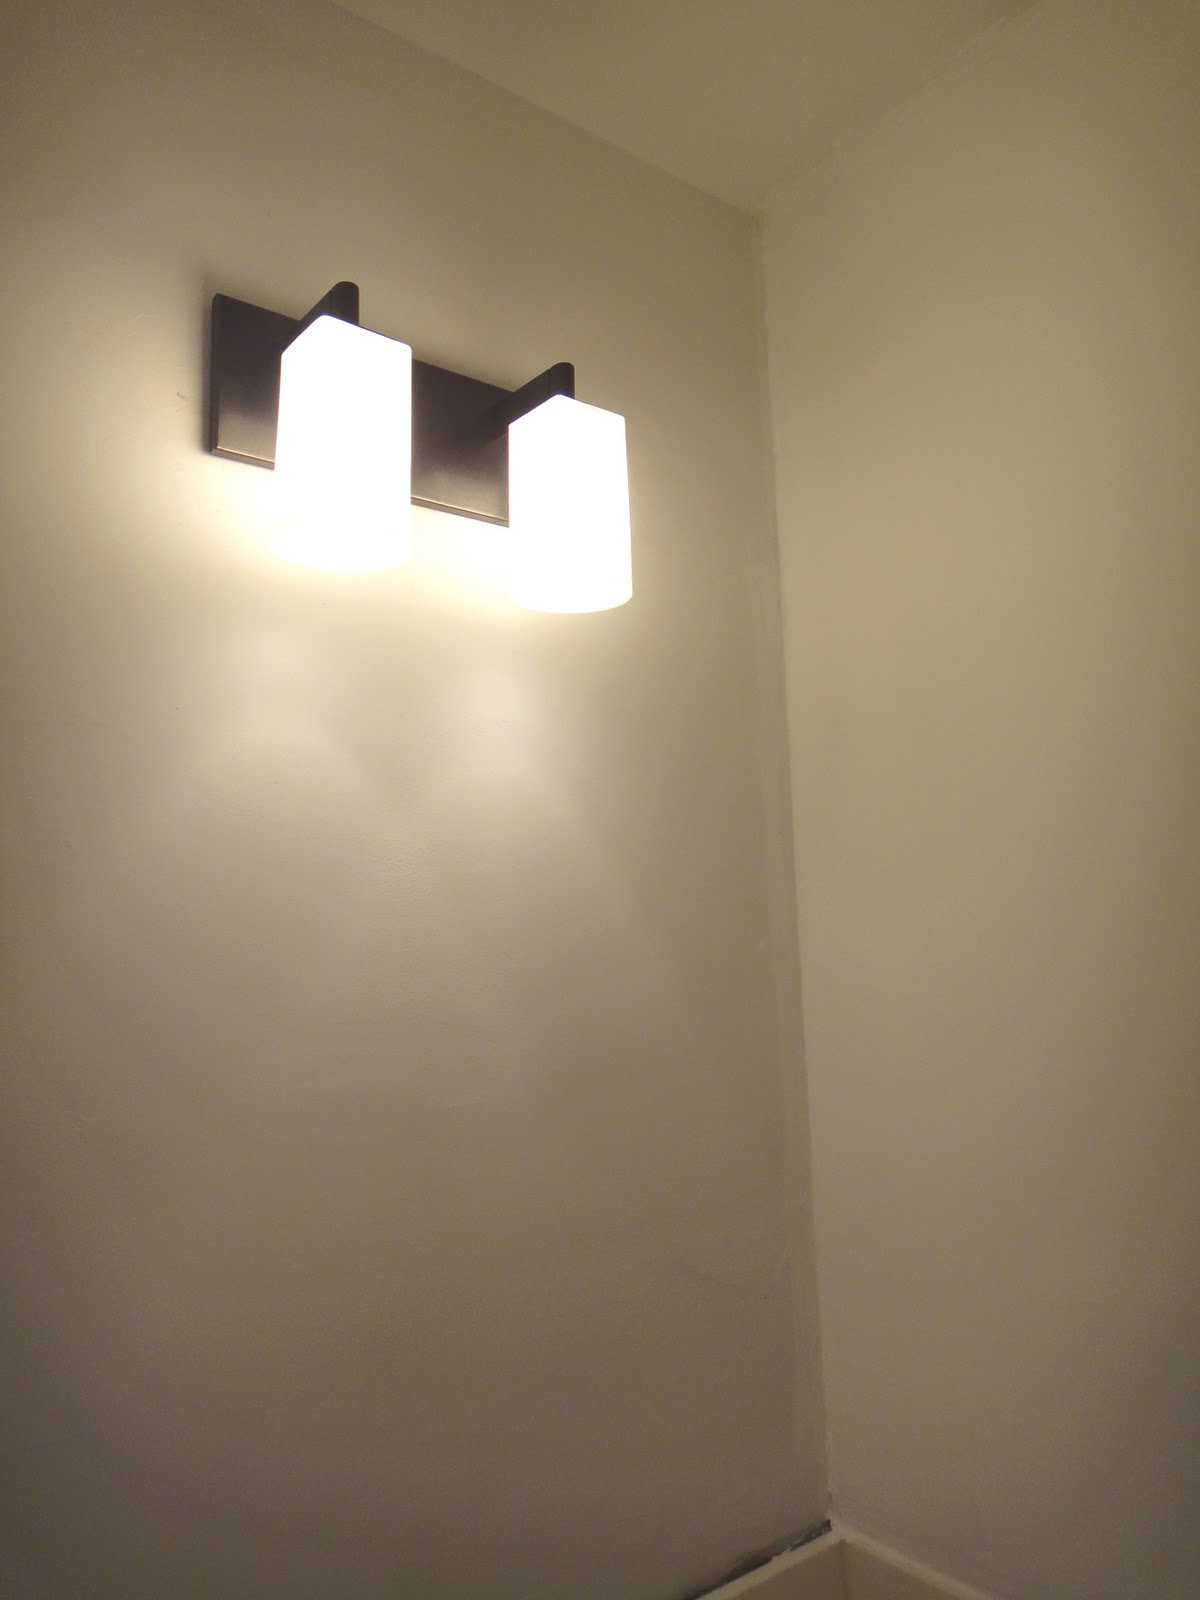 products electrical lighting interior lights bathroom